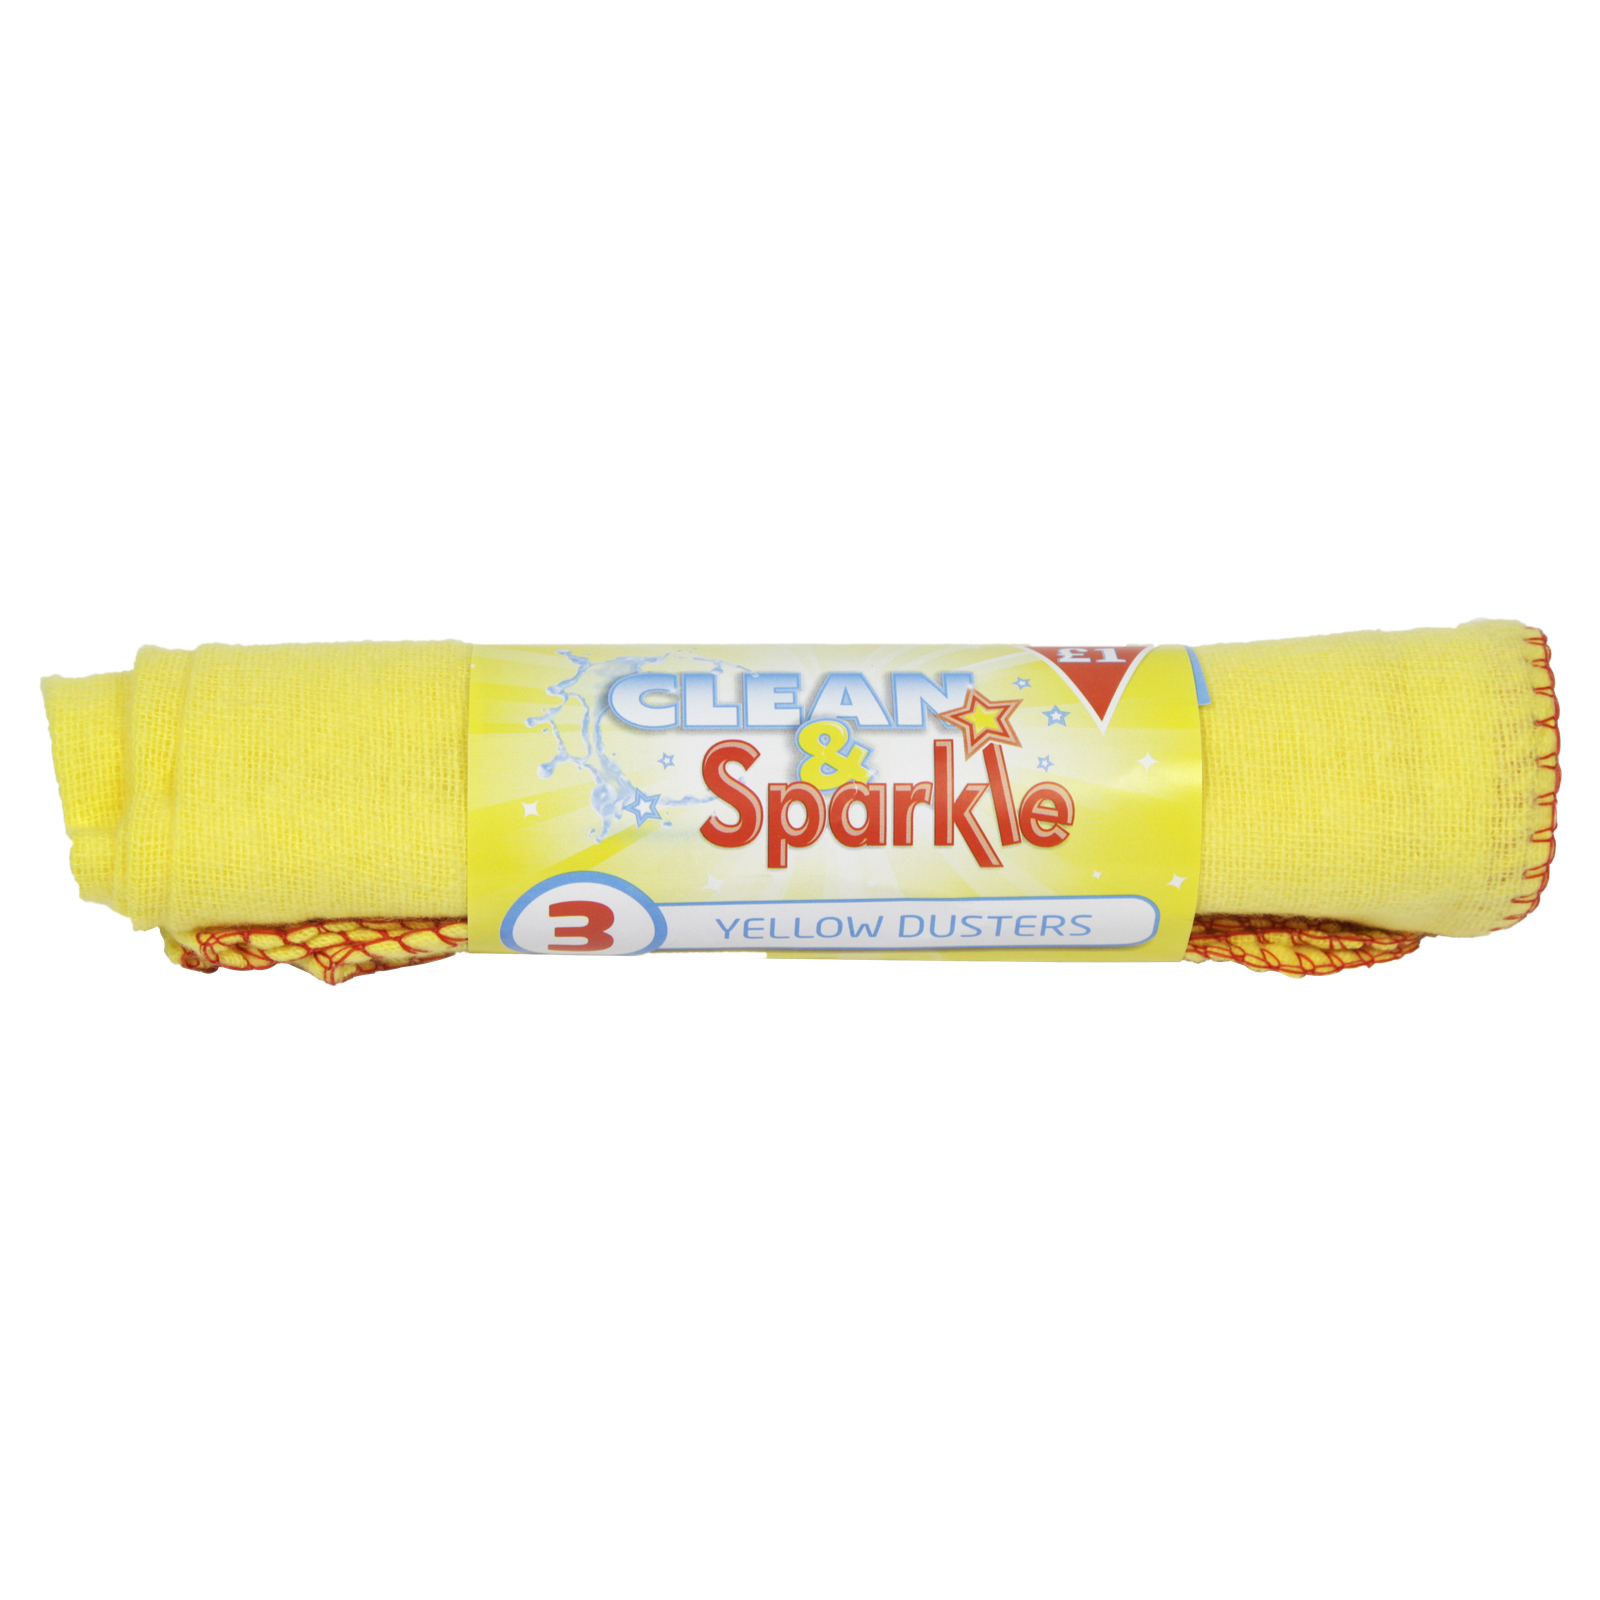 CLEAN+SPARKLE £1 YELLOW DUSTERS 5PK